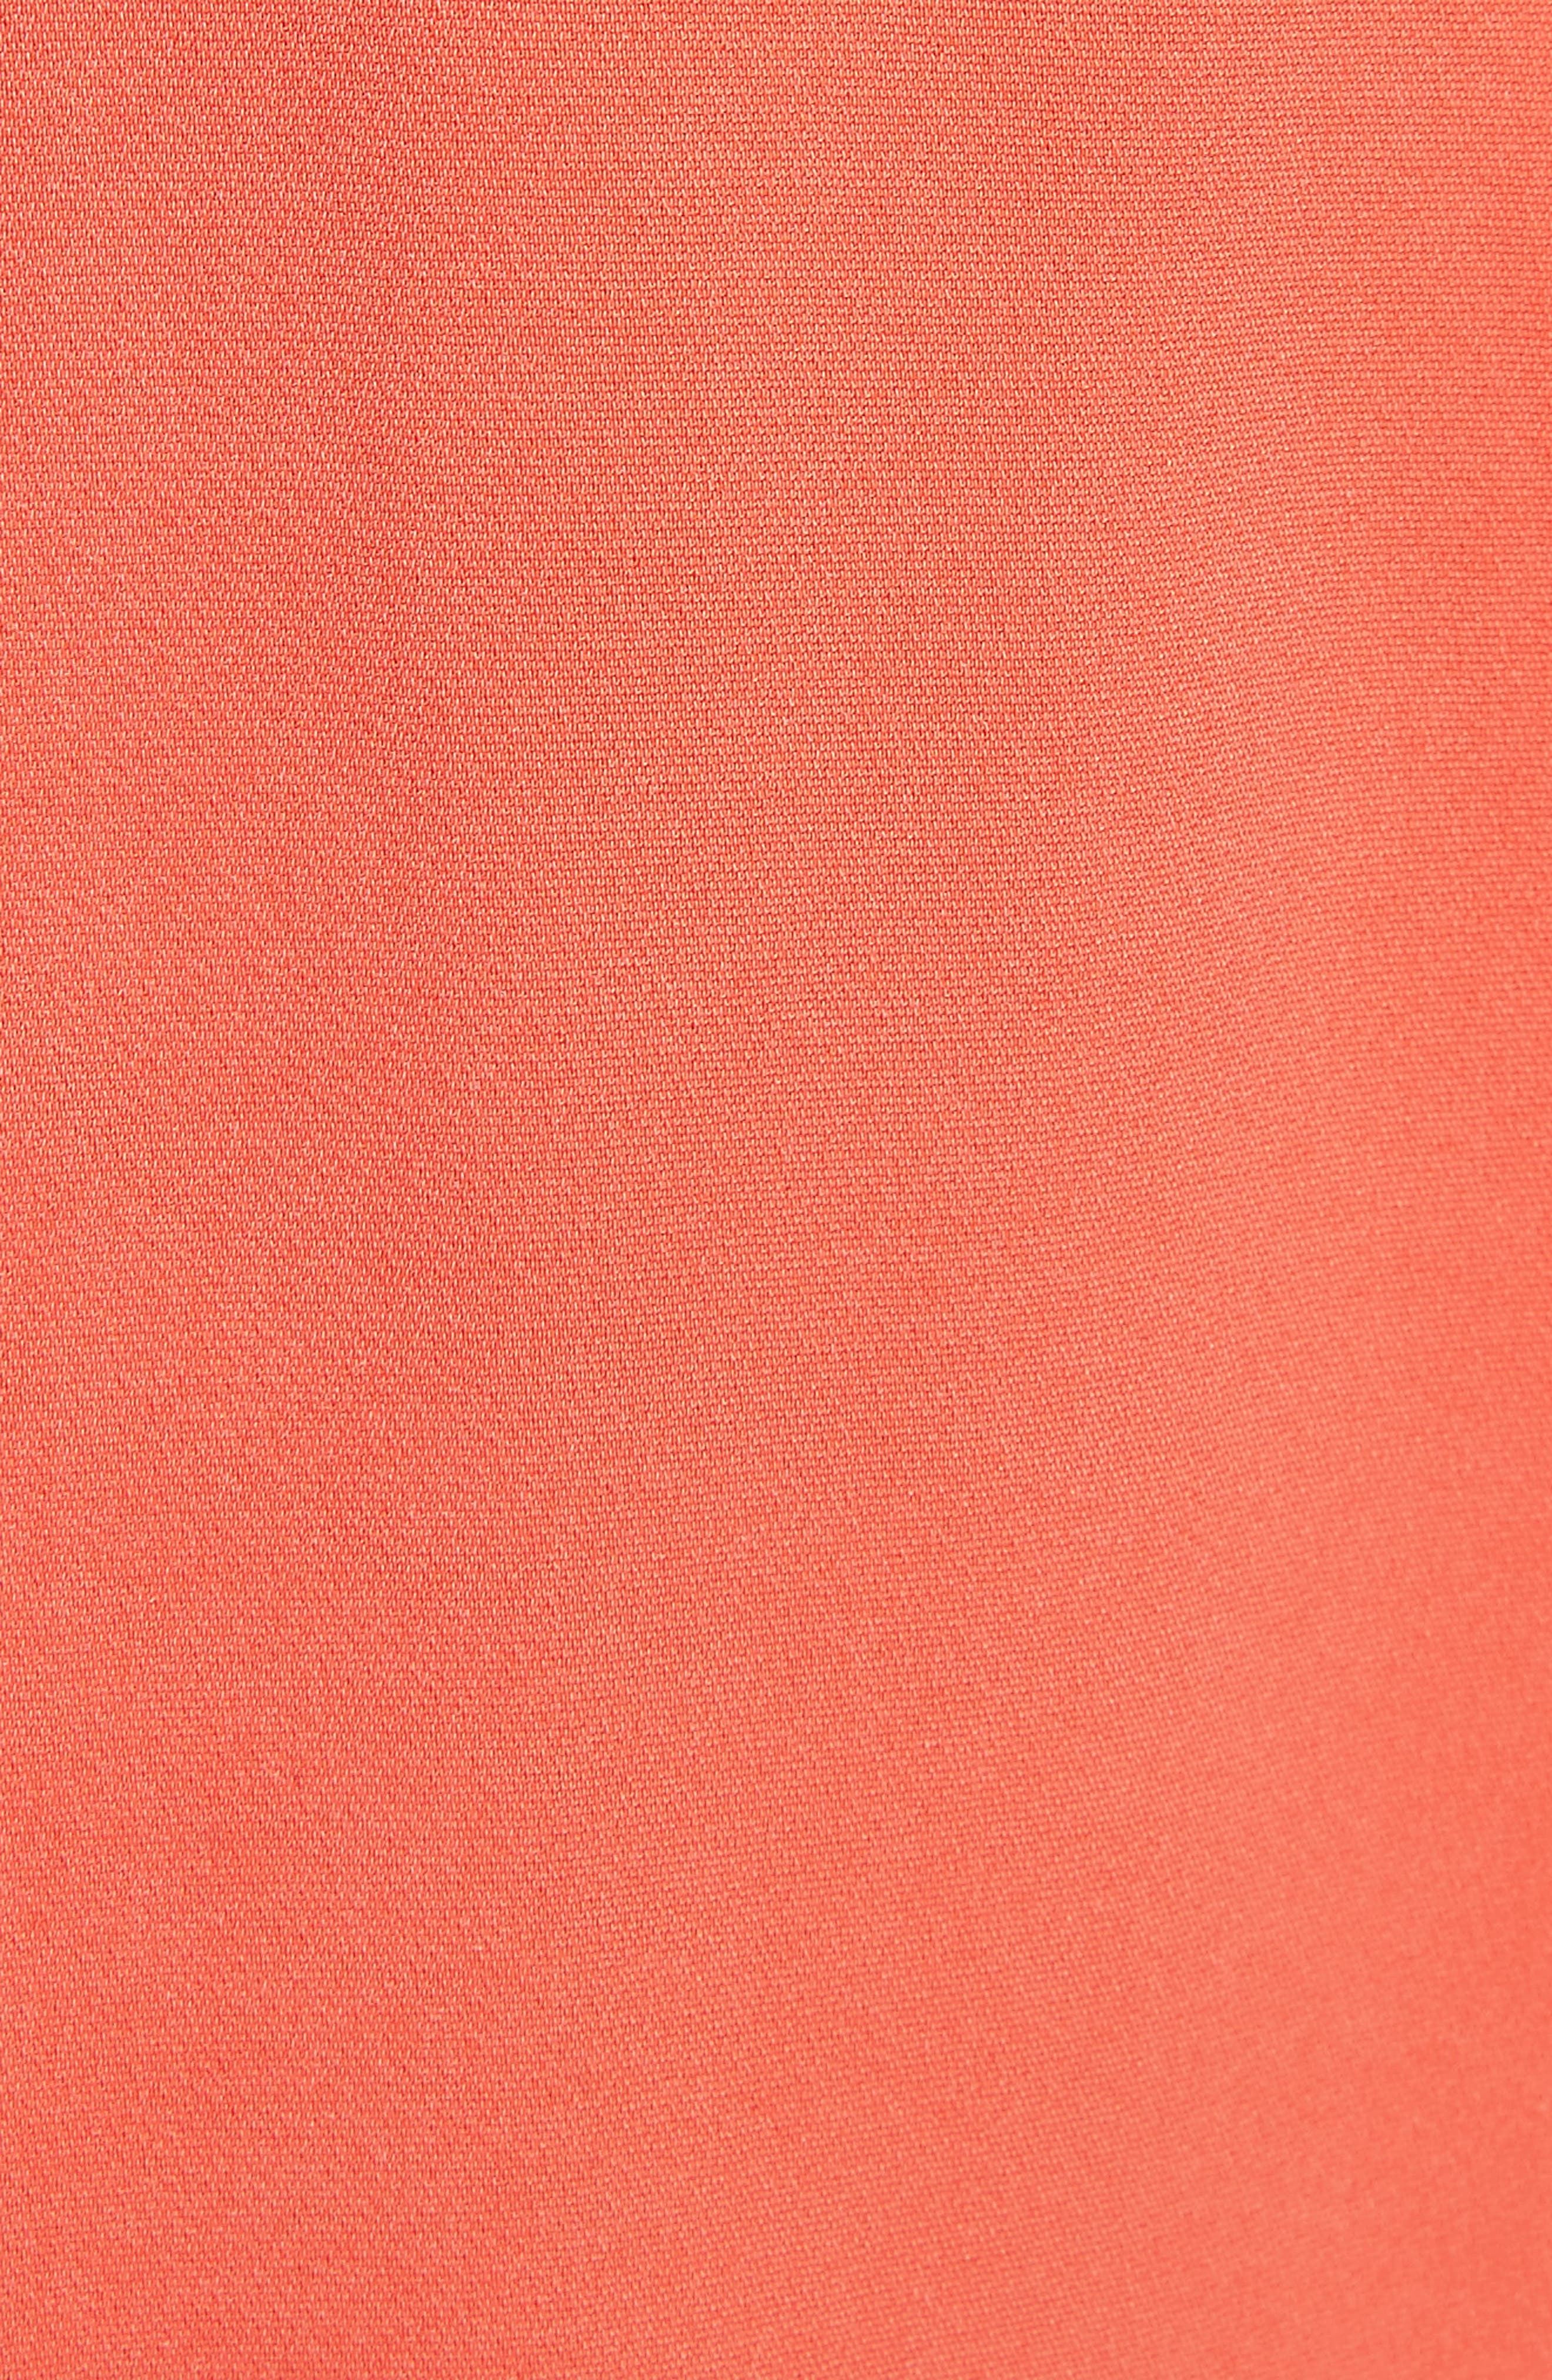 Belted Trousers,                             Alternate thumbnail 5, color,                             Blood Orange